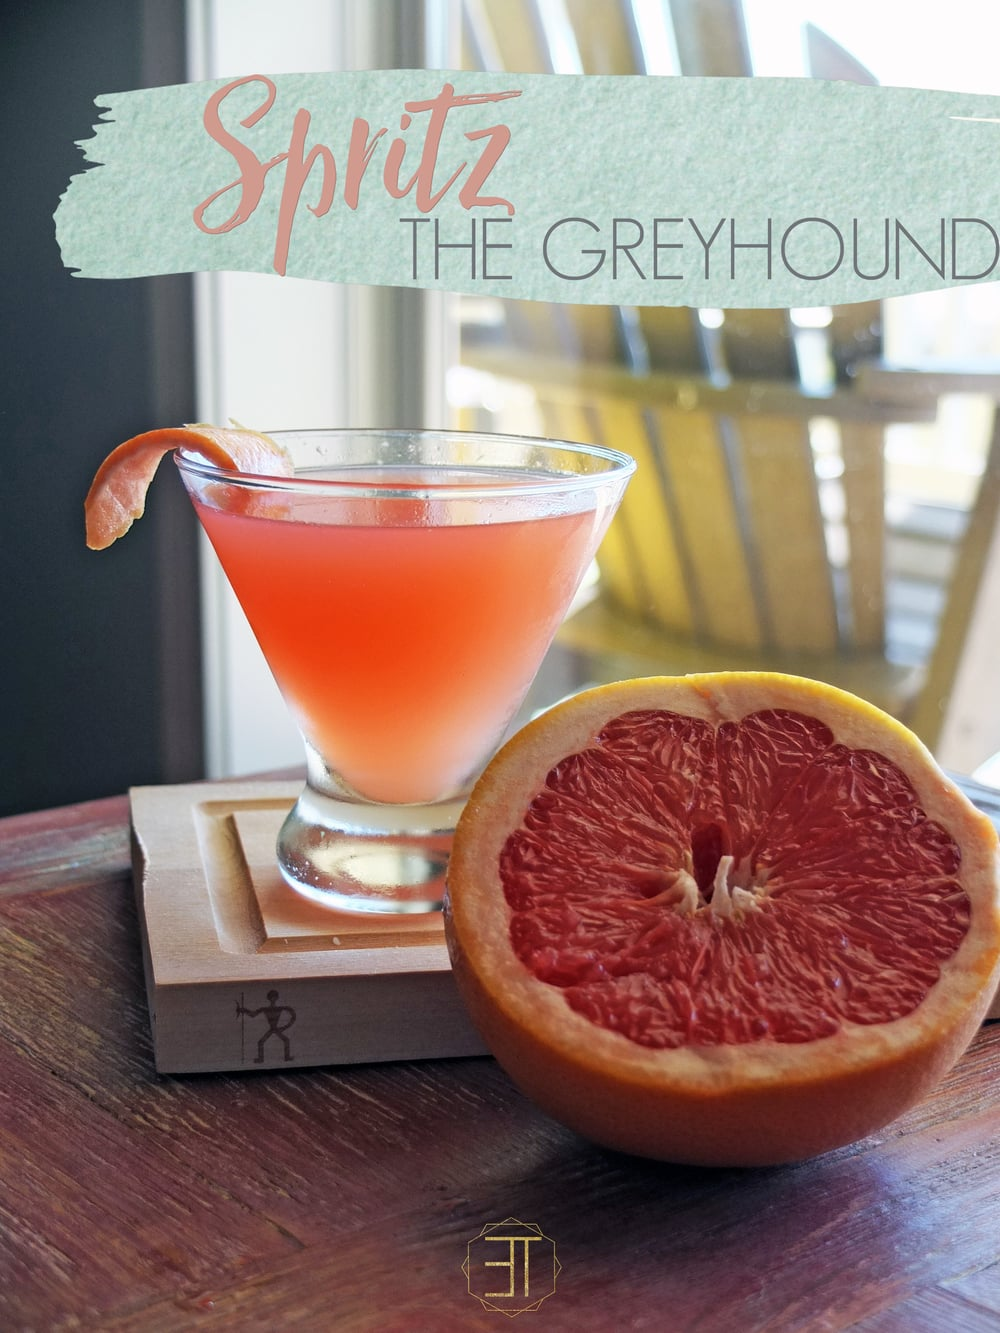 Spritz The Greyhound a summer and spring drink/cocktail recipe including grapefruit & gin with a bubbley twist. // www.ElleTalk.com